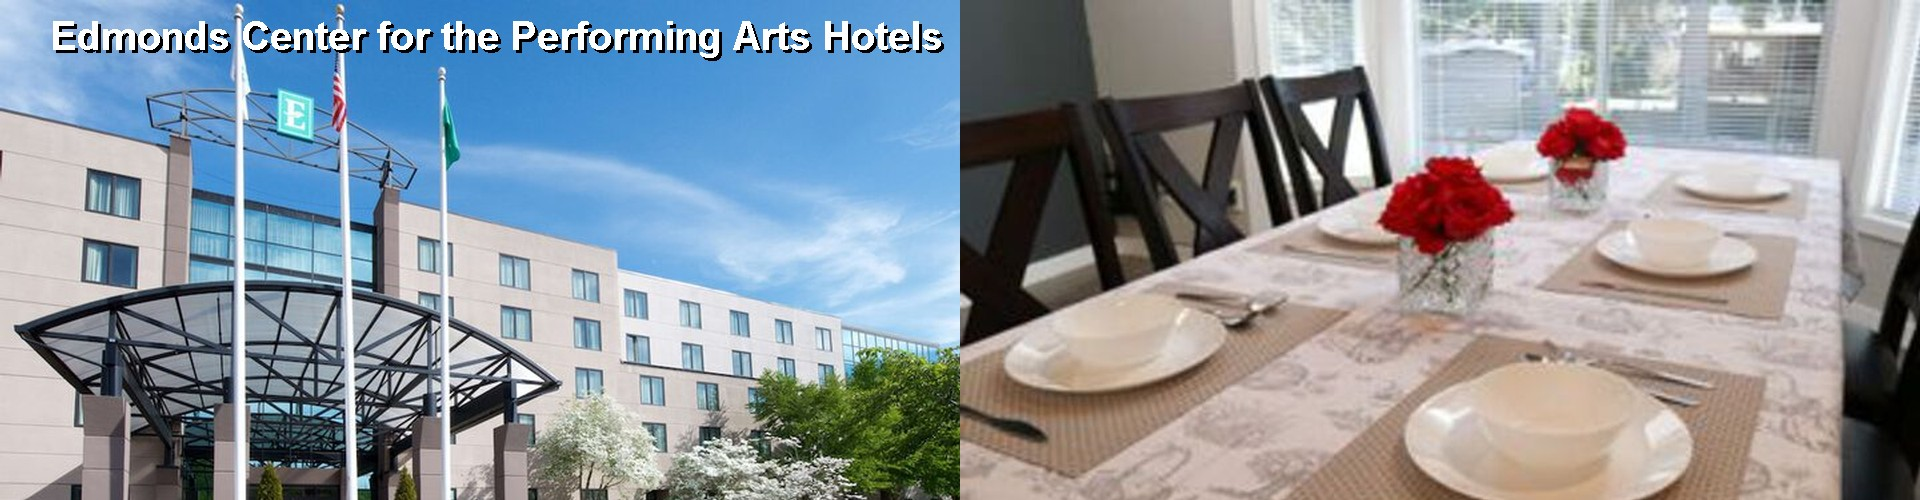 5 Best Hotels near Edmonds Center for the Performing Arts